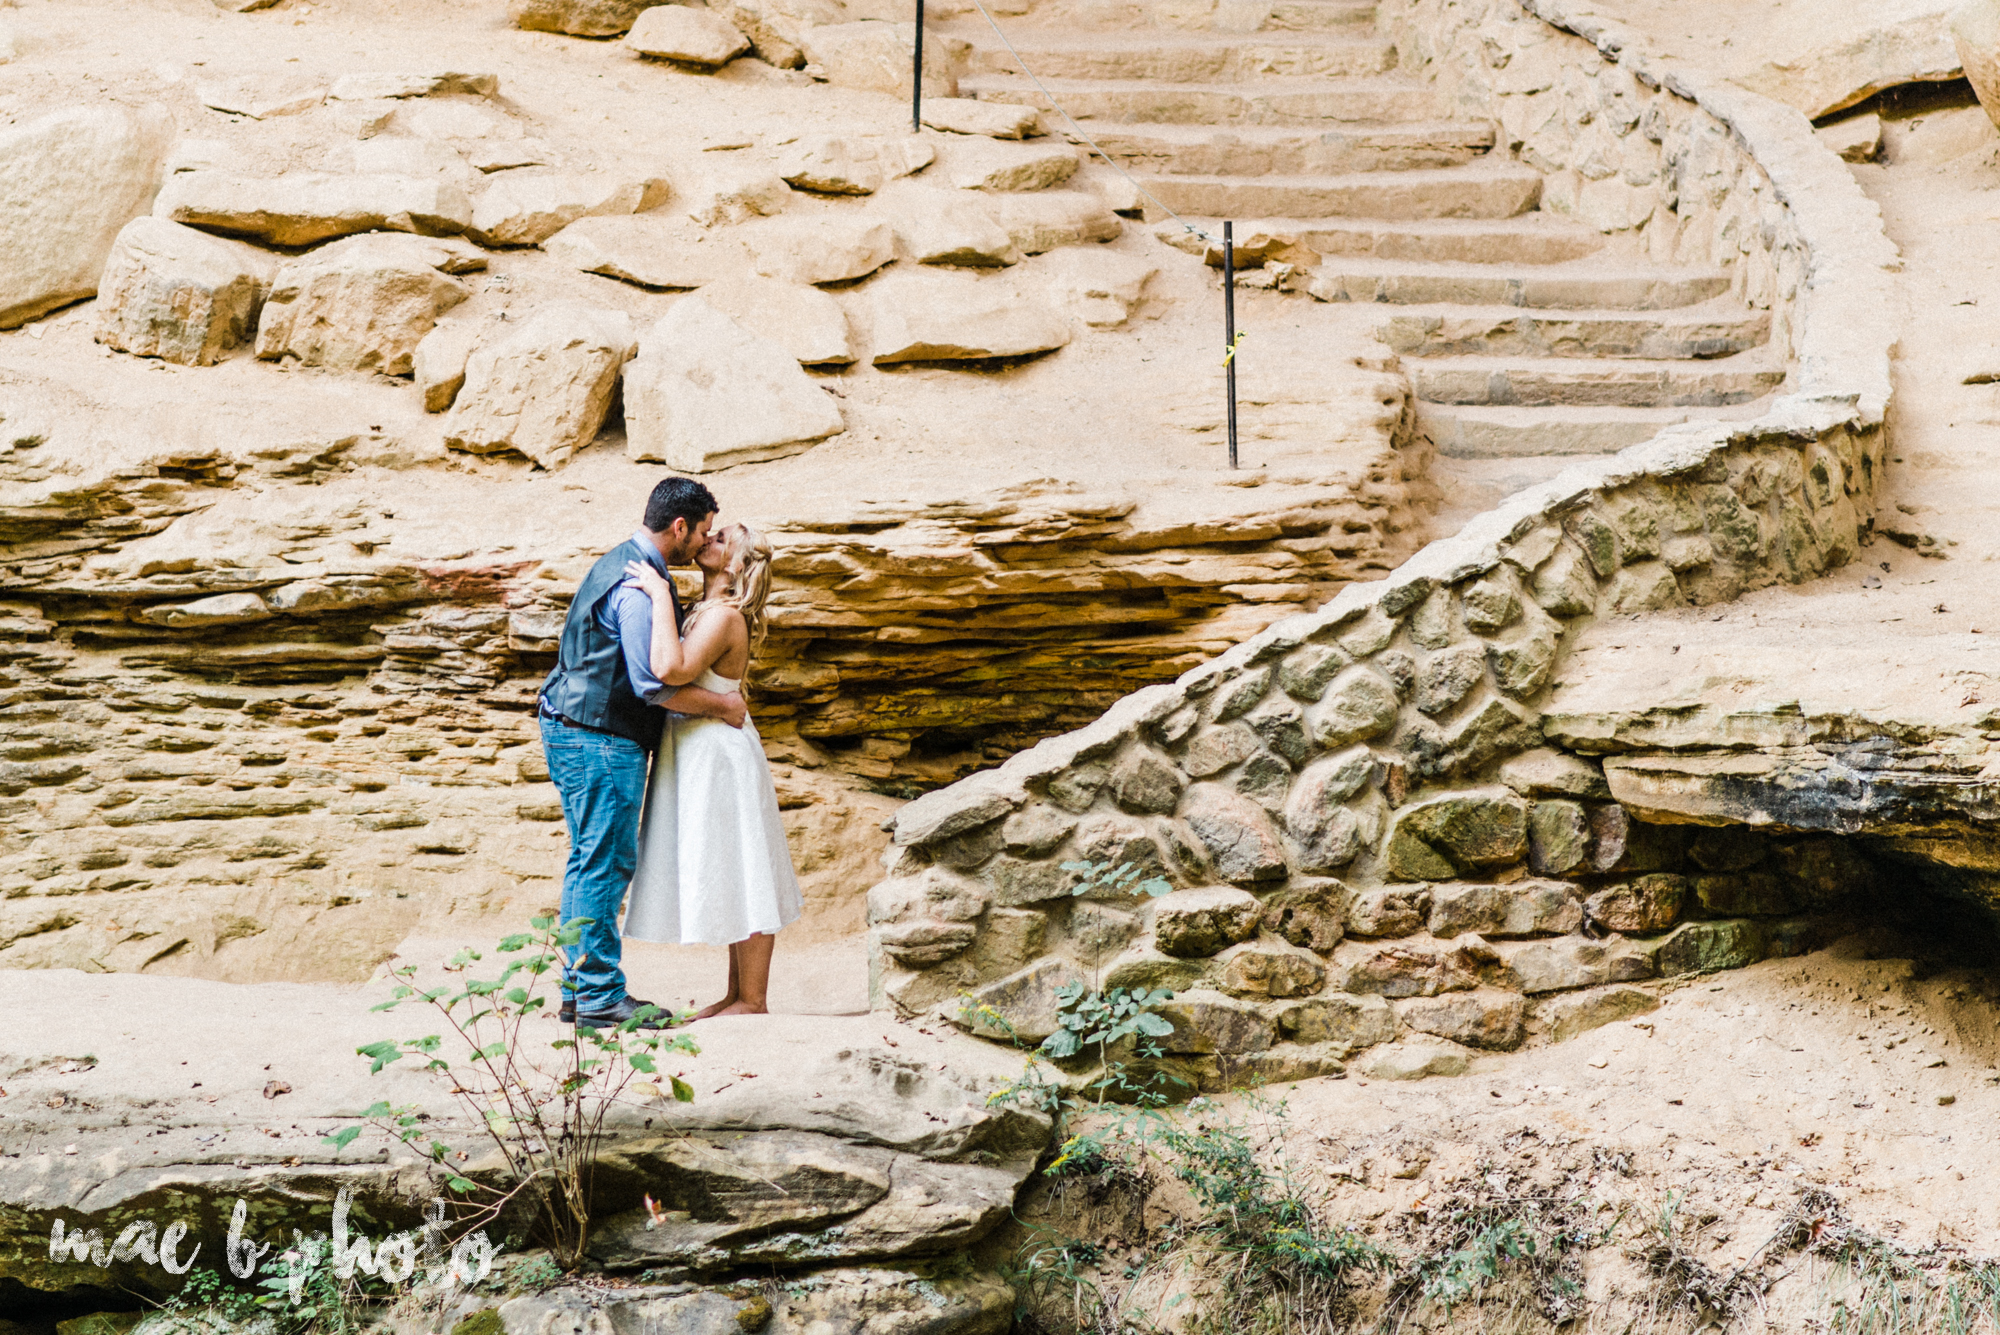 bobbi and pat's intimate fall cabin elopement in hocking hills old man's cave and rock house in logan ohio photographed by youngstown wedding photographer mae b photo-73.jpg